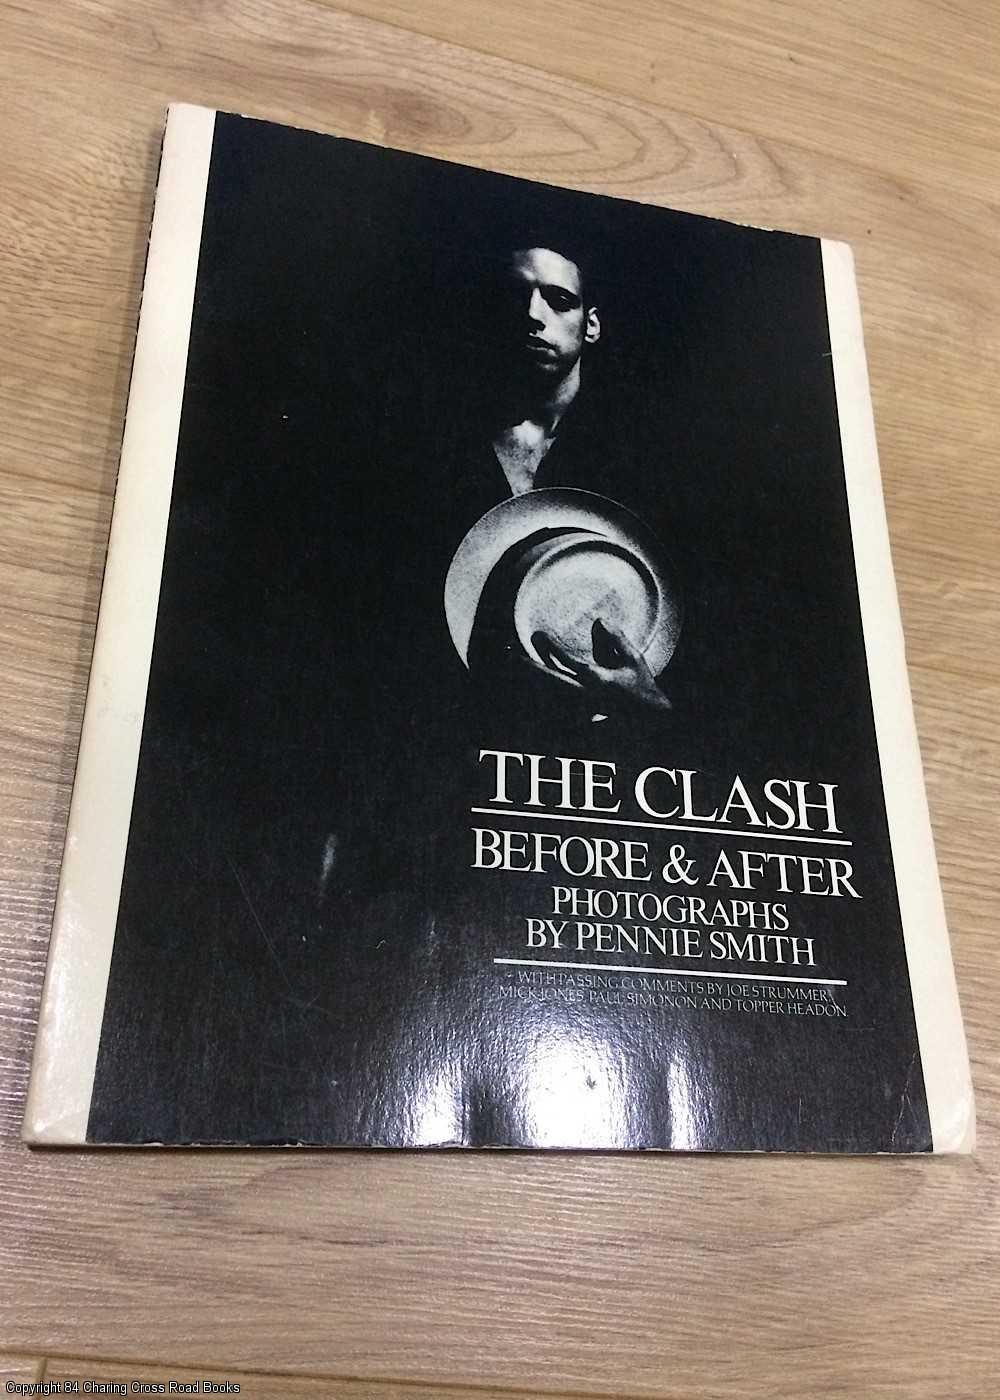 SMITH, PENNIE - The Clash : Before and After